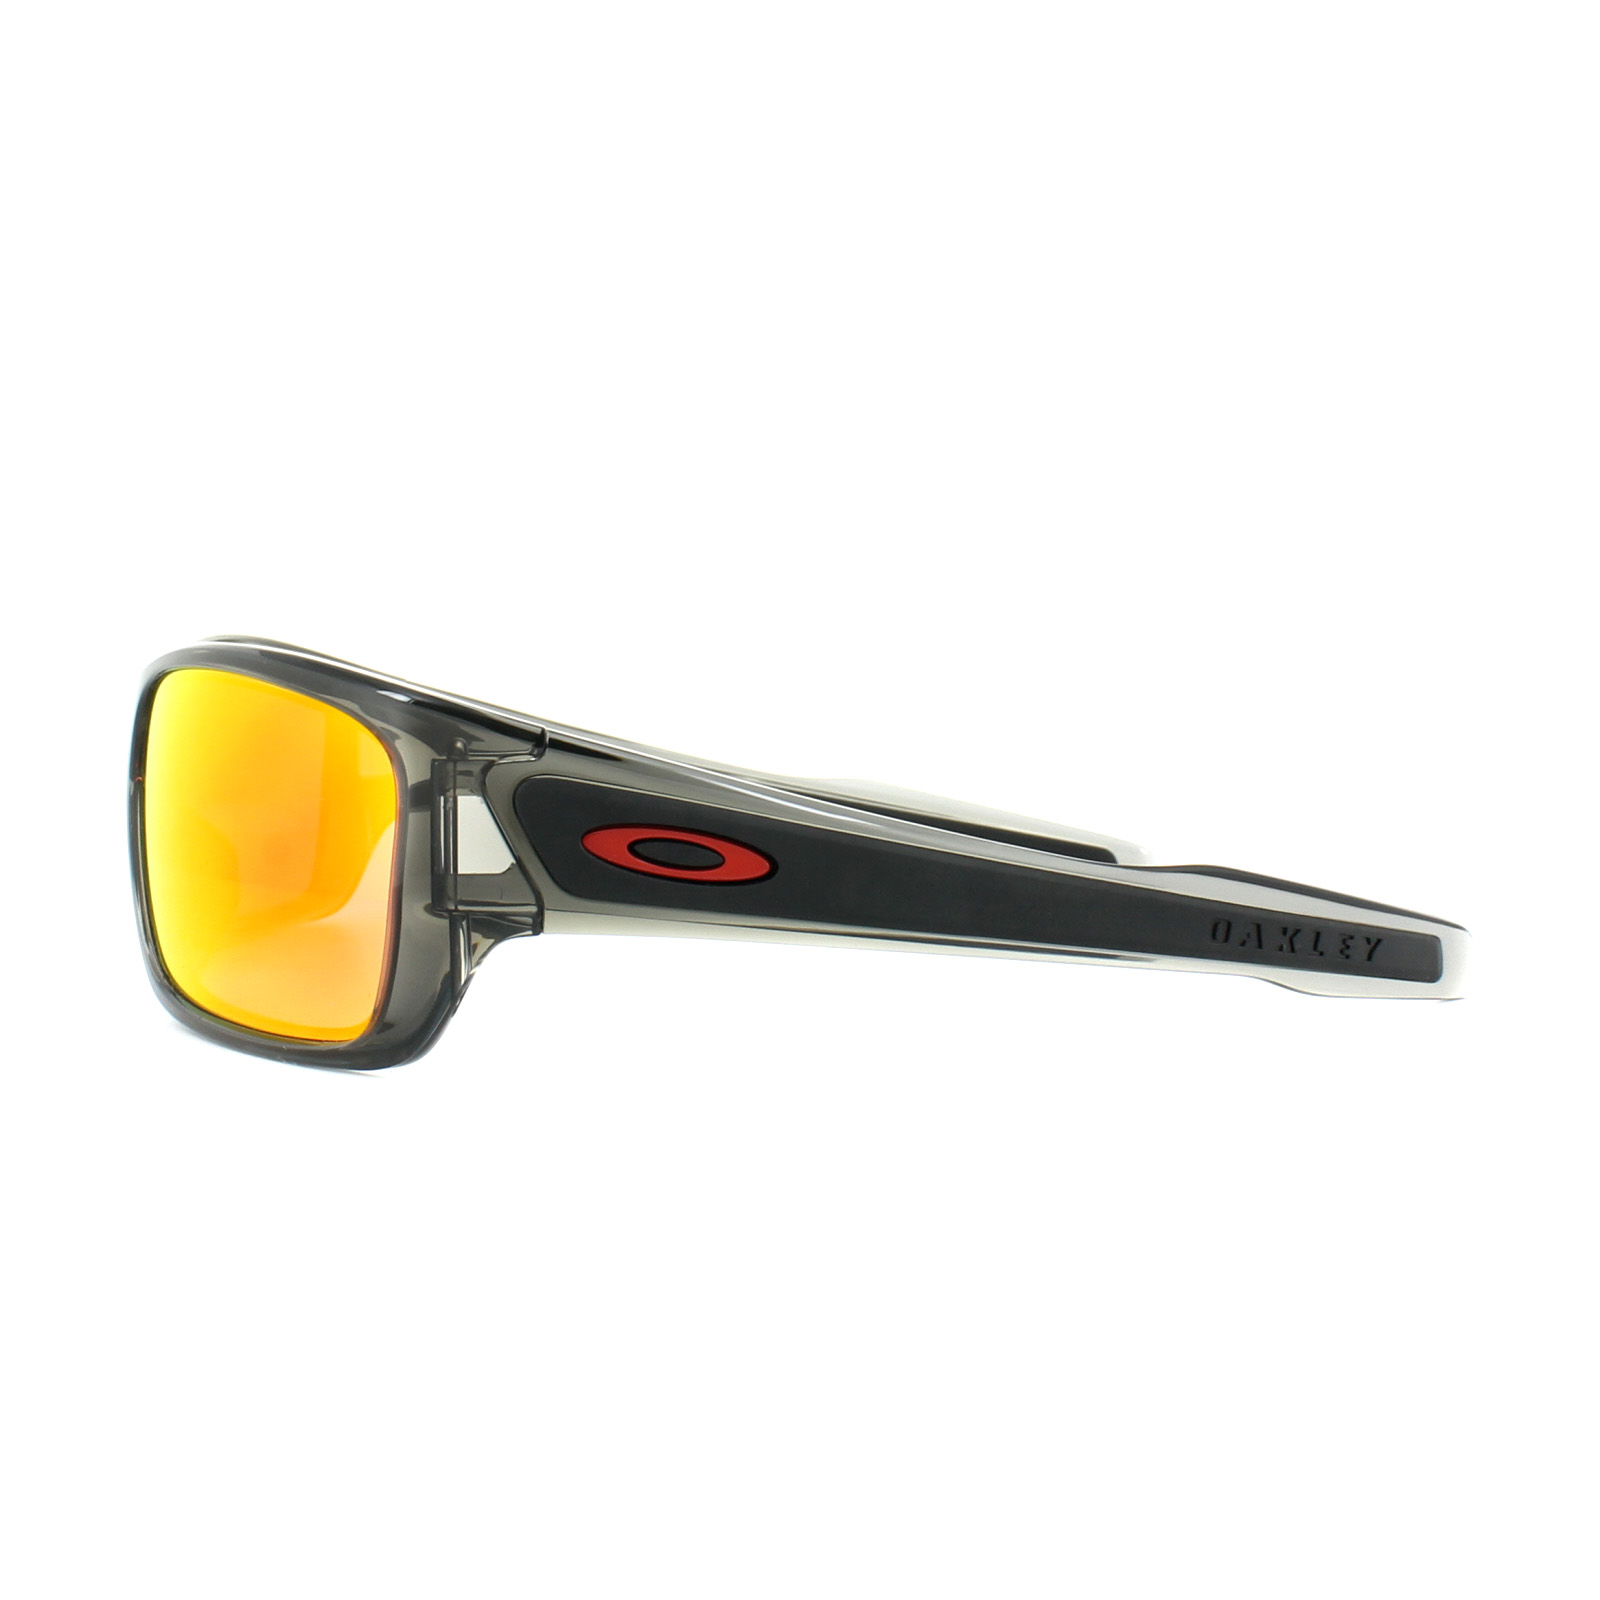 e865d03e54 Sentinel Oakley Sunglasses Turbine XS Youth Fit OJ9003-04 Grey Smoke Ruby  Iridium